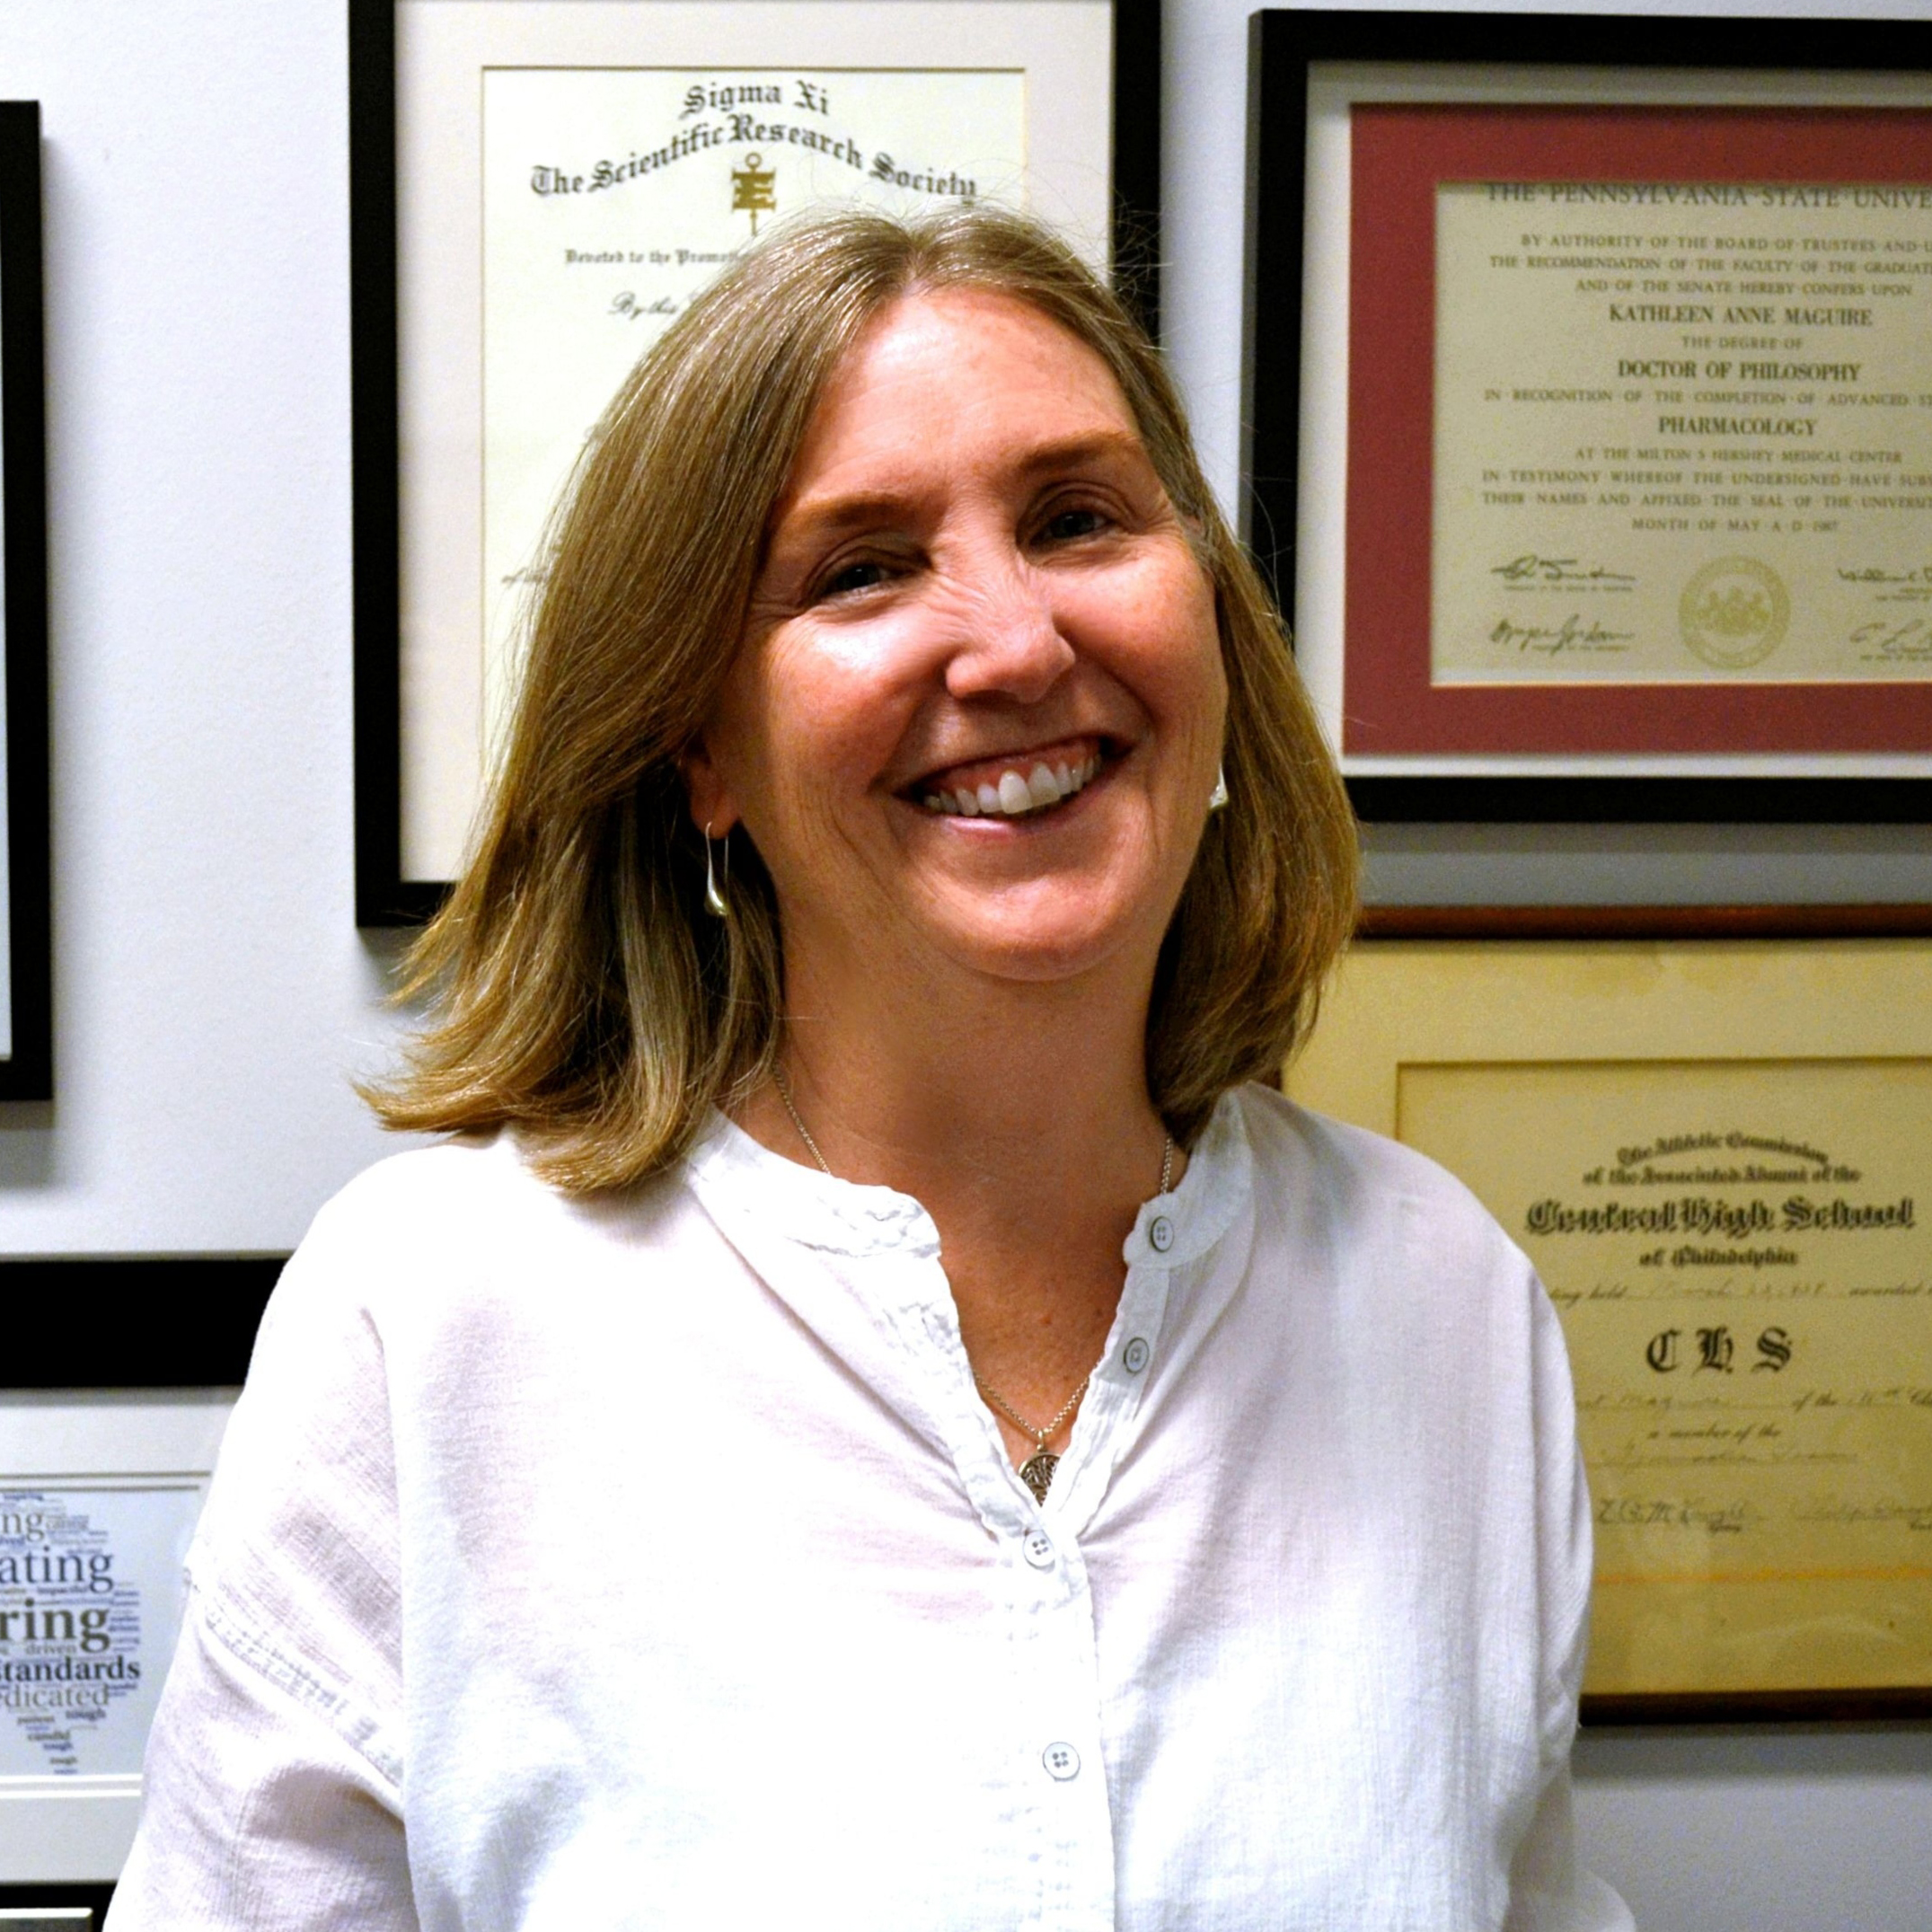 Headshot of Kathy Maguire-Zeiss in front of her wall of achievements.